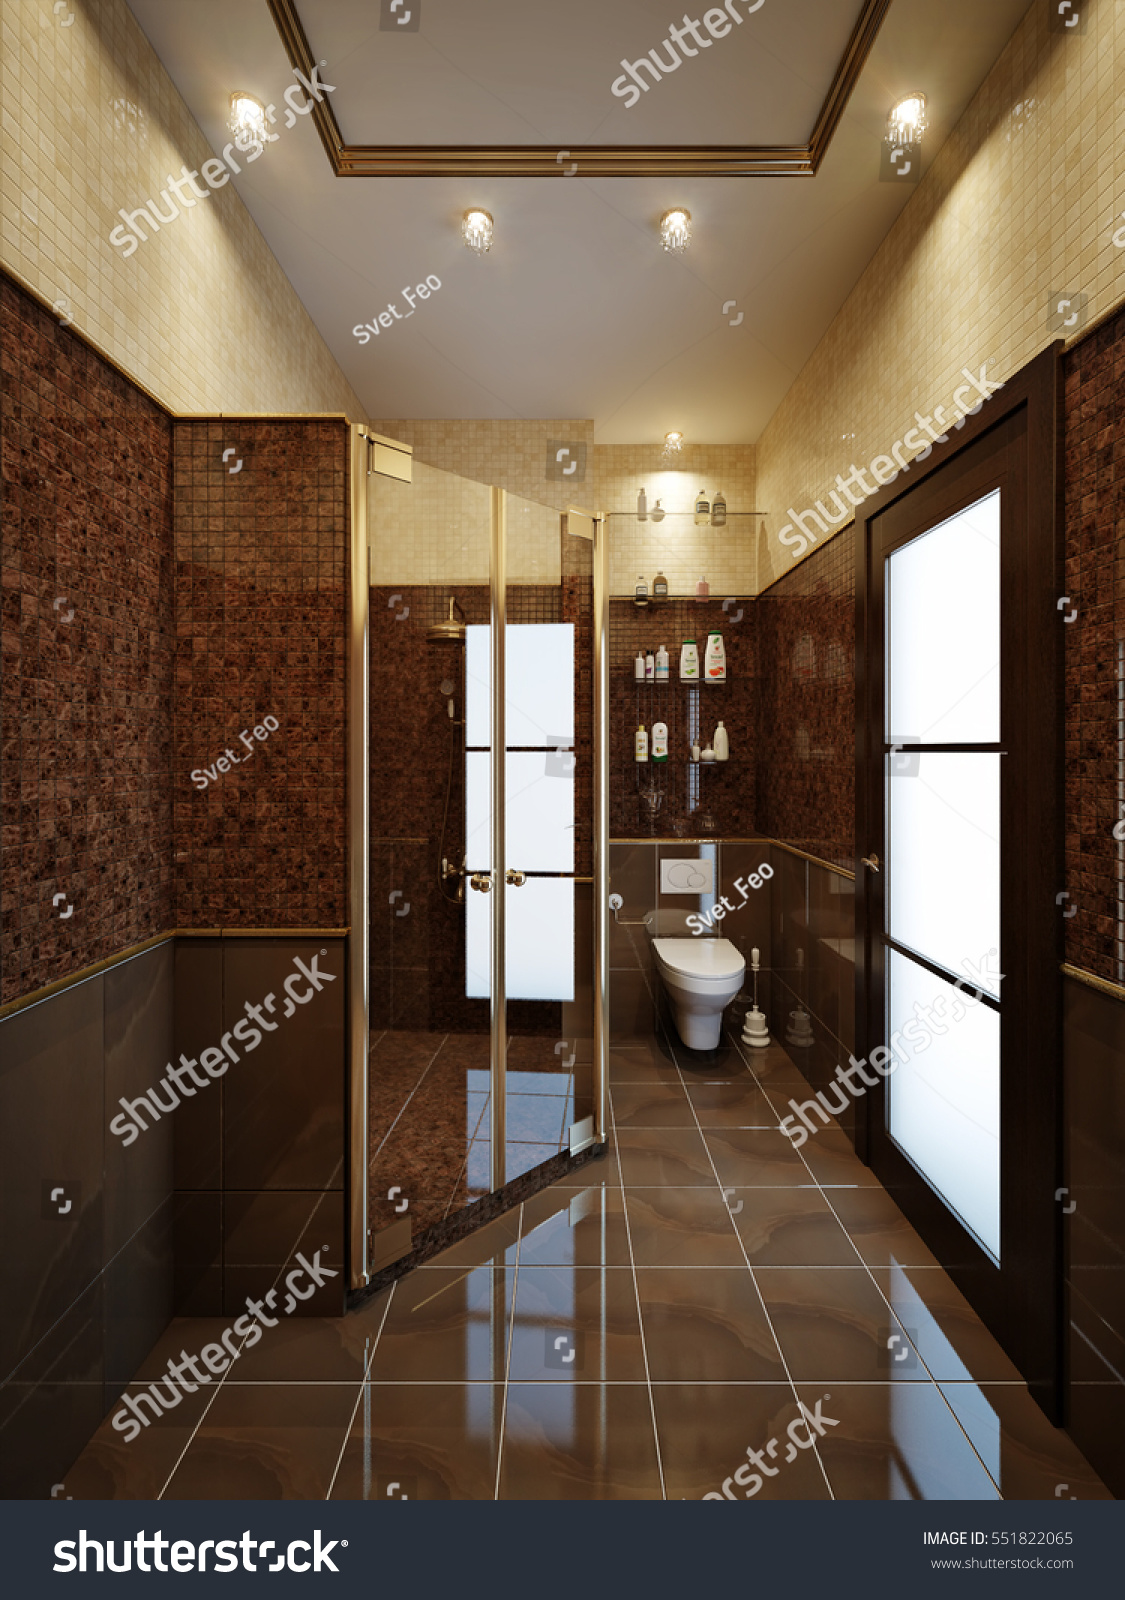 Furnished Bathroom Luxury Home Marble Tile Stock Illustration 551822065